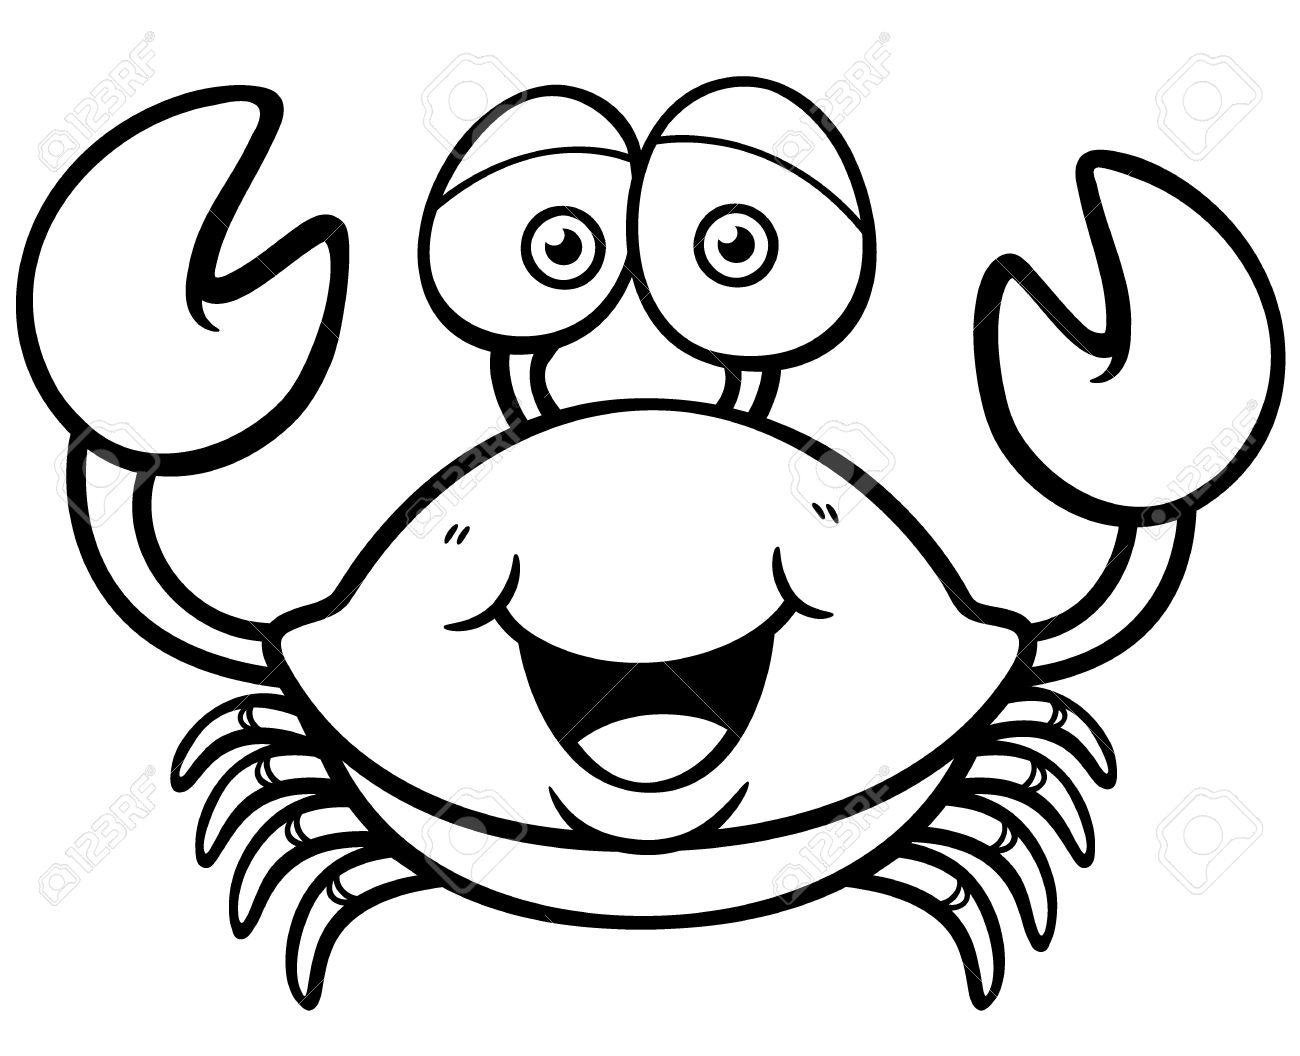 Cartoon Crab Drawing